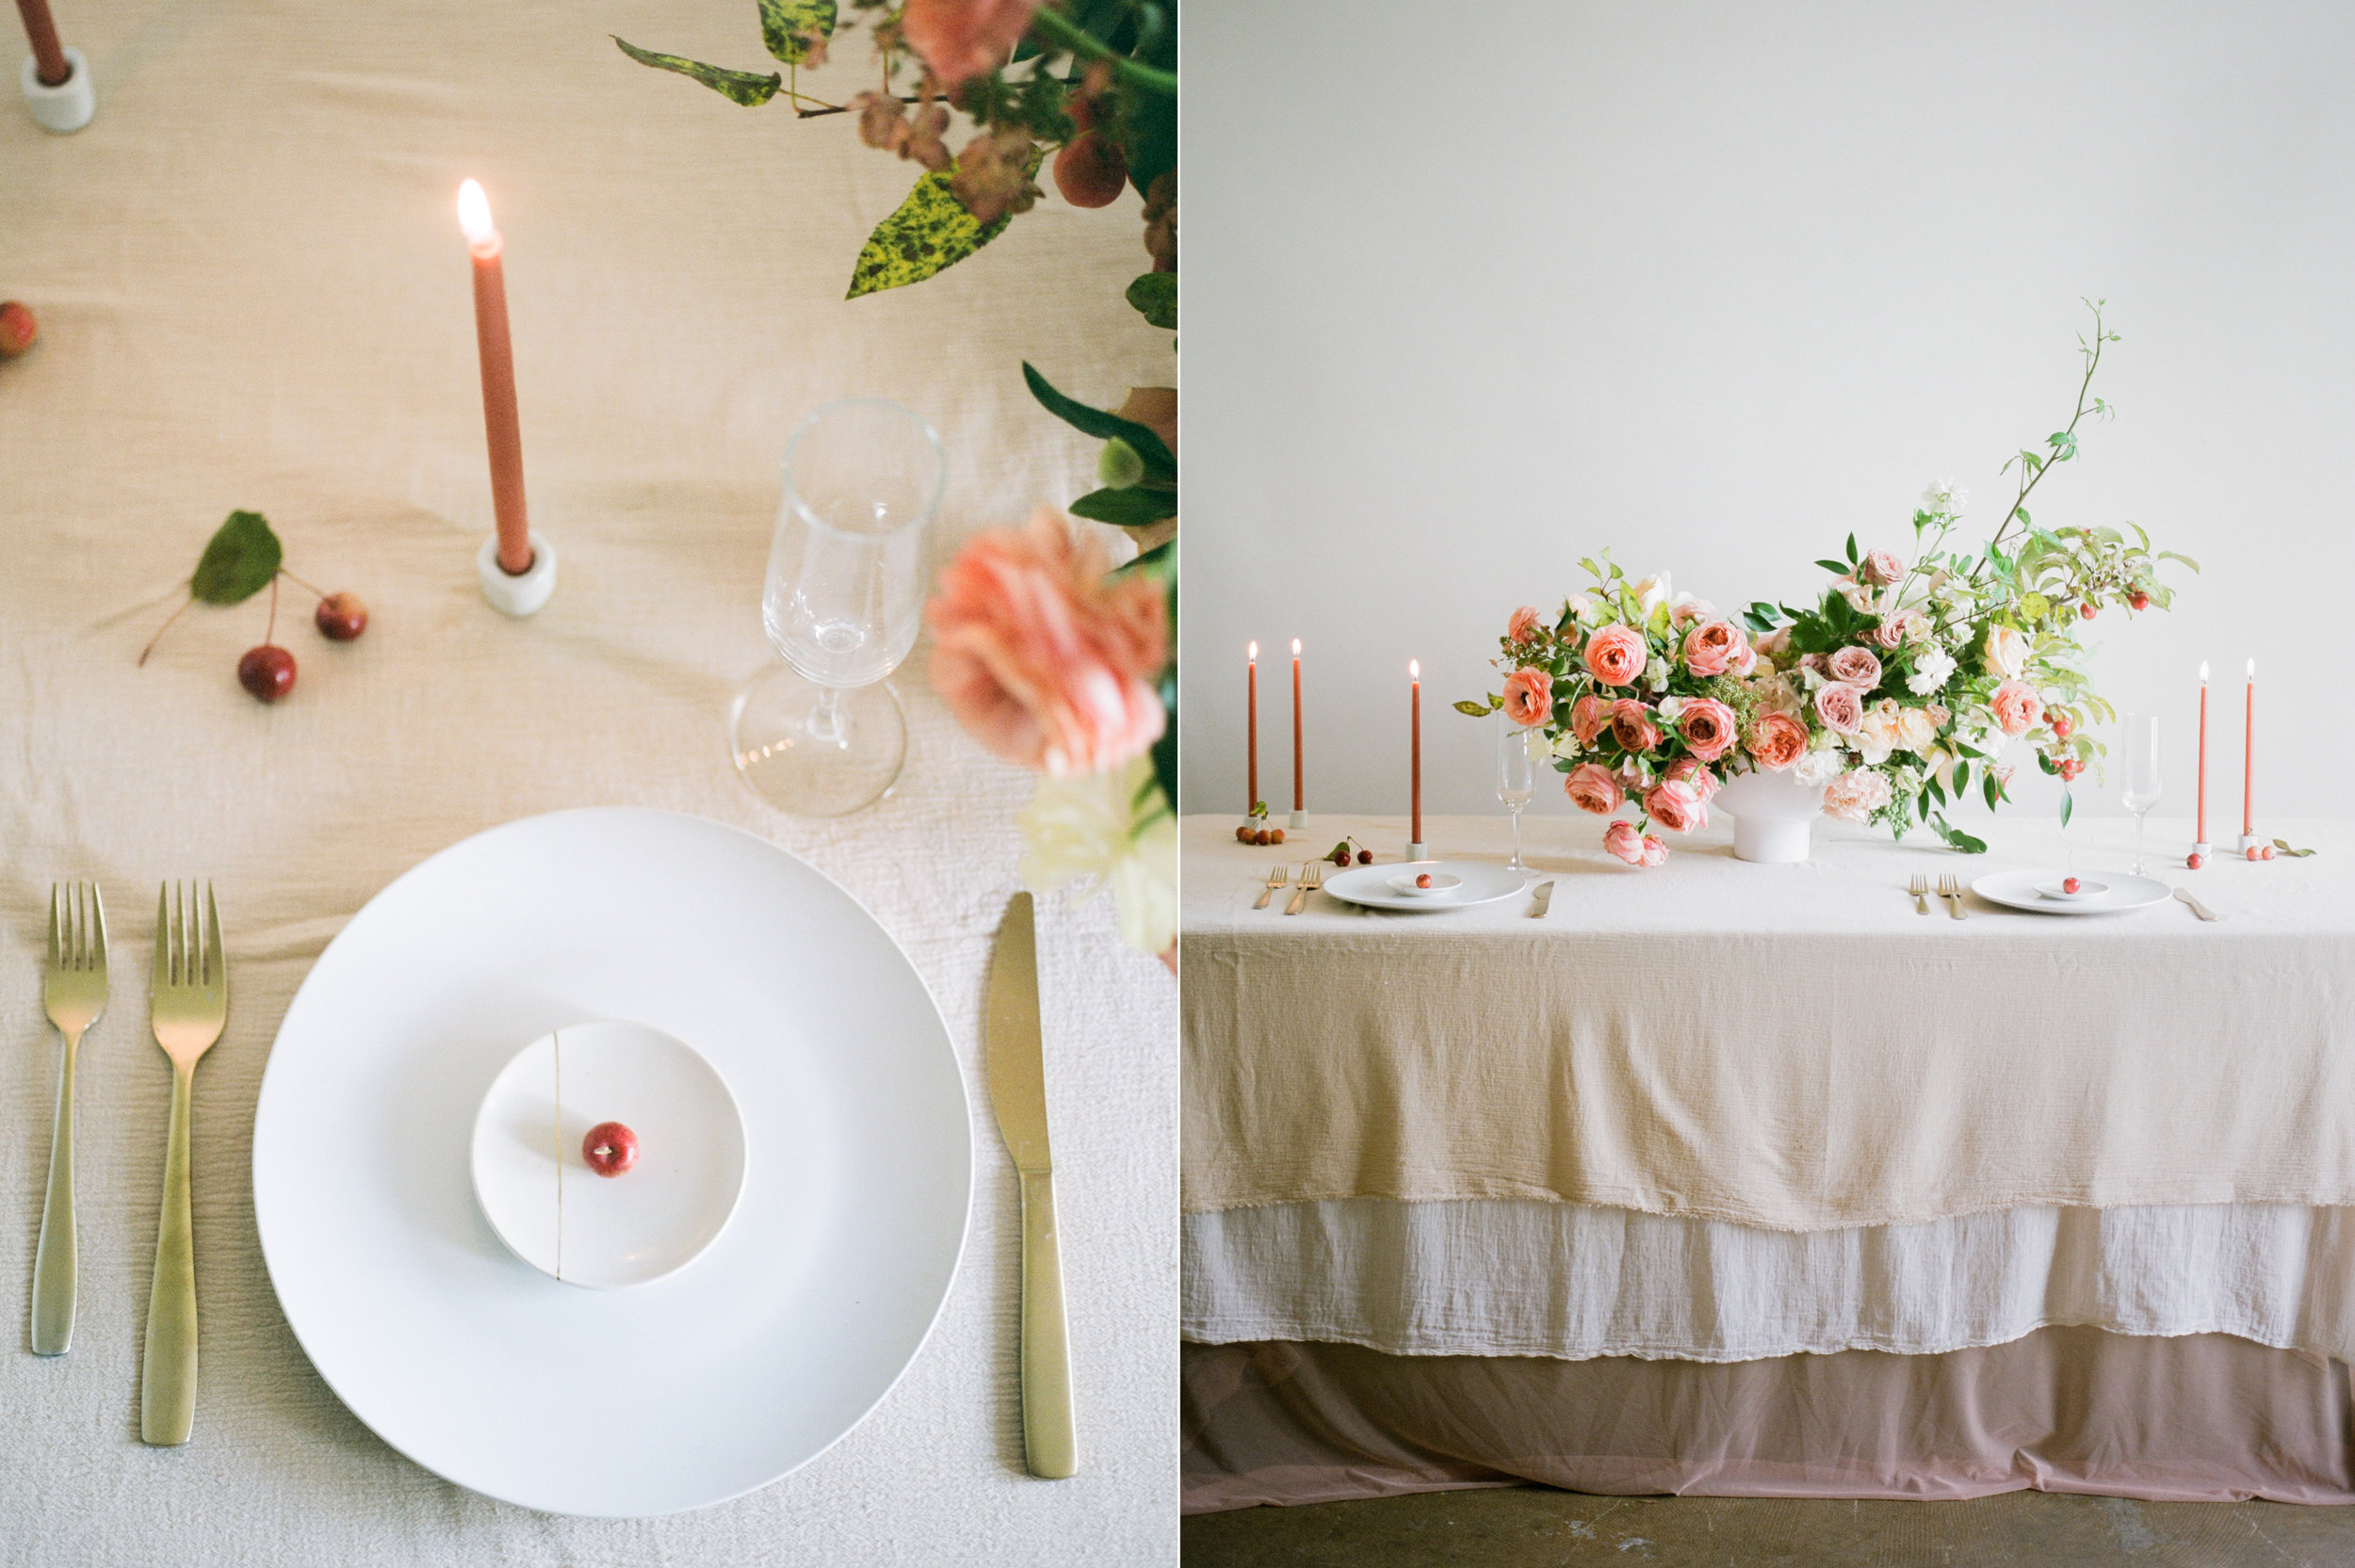 film wedding photographer - Houston wedding photographer - intimate wedding photographer - Christine Gosch - fall wedding inspiration - blush fall wedding - wedding flowers - fall wedding flowers - minimal wedding table inspo - Maxit Flower Design-6.jpg